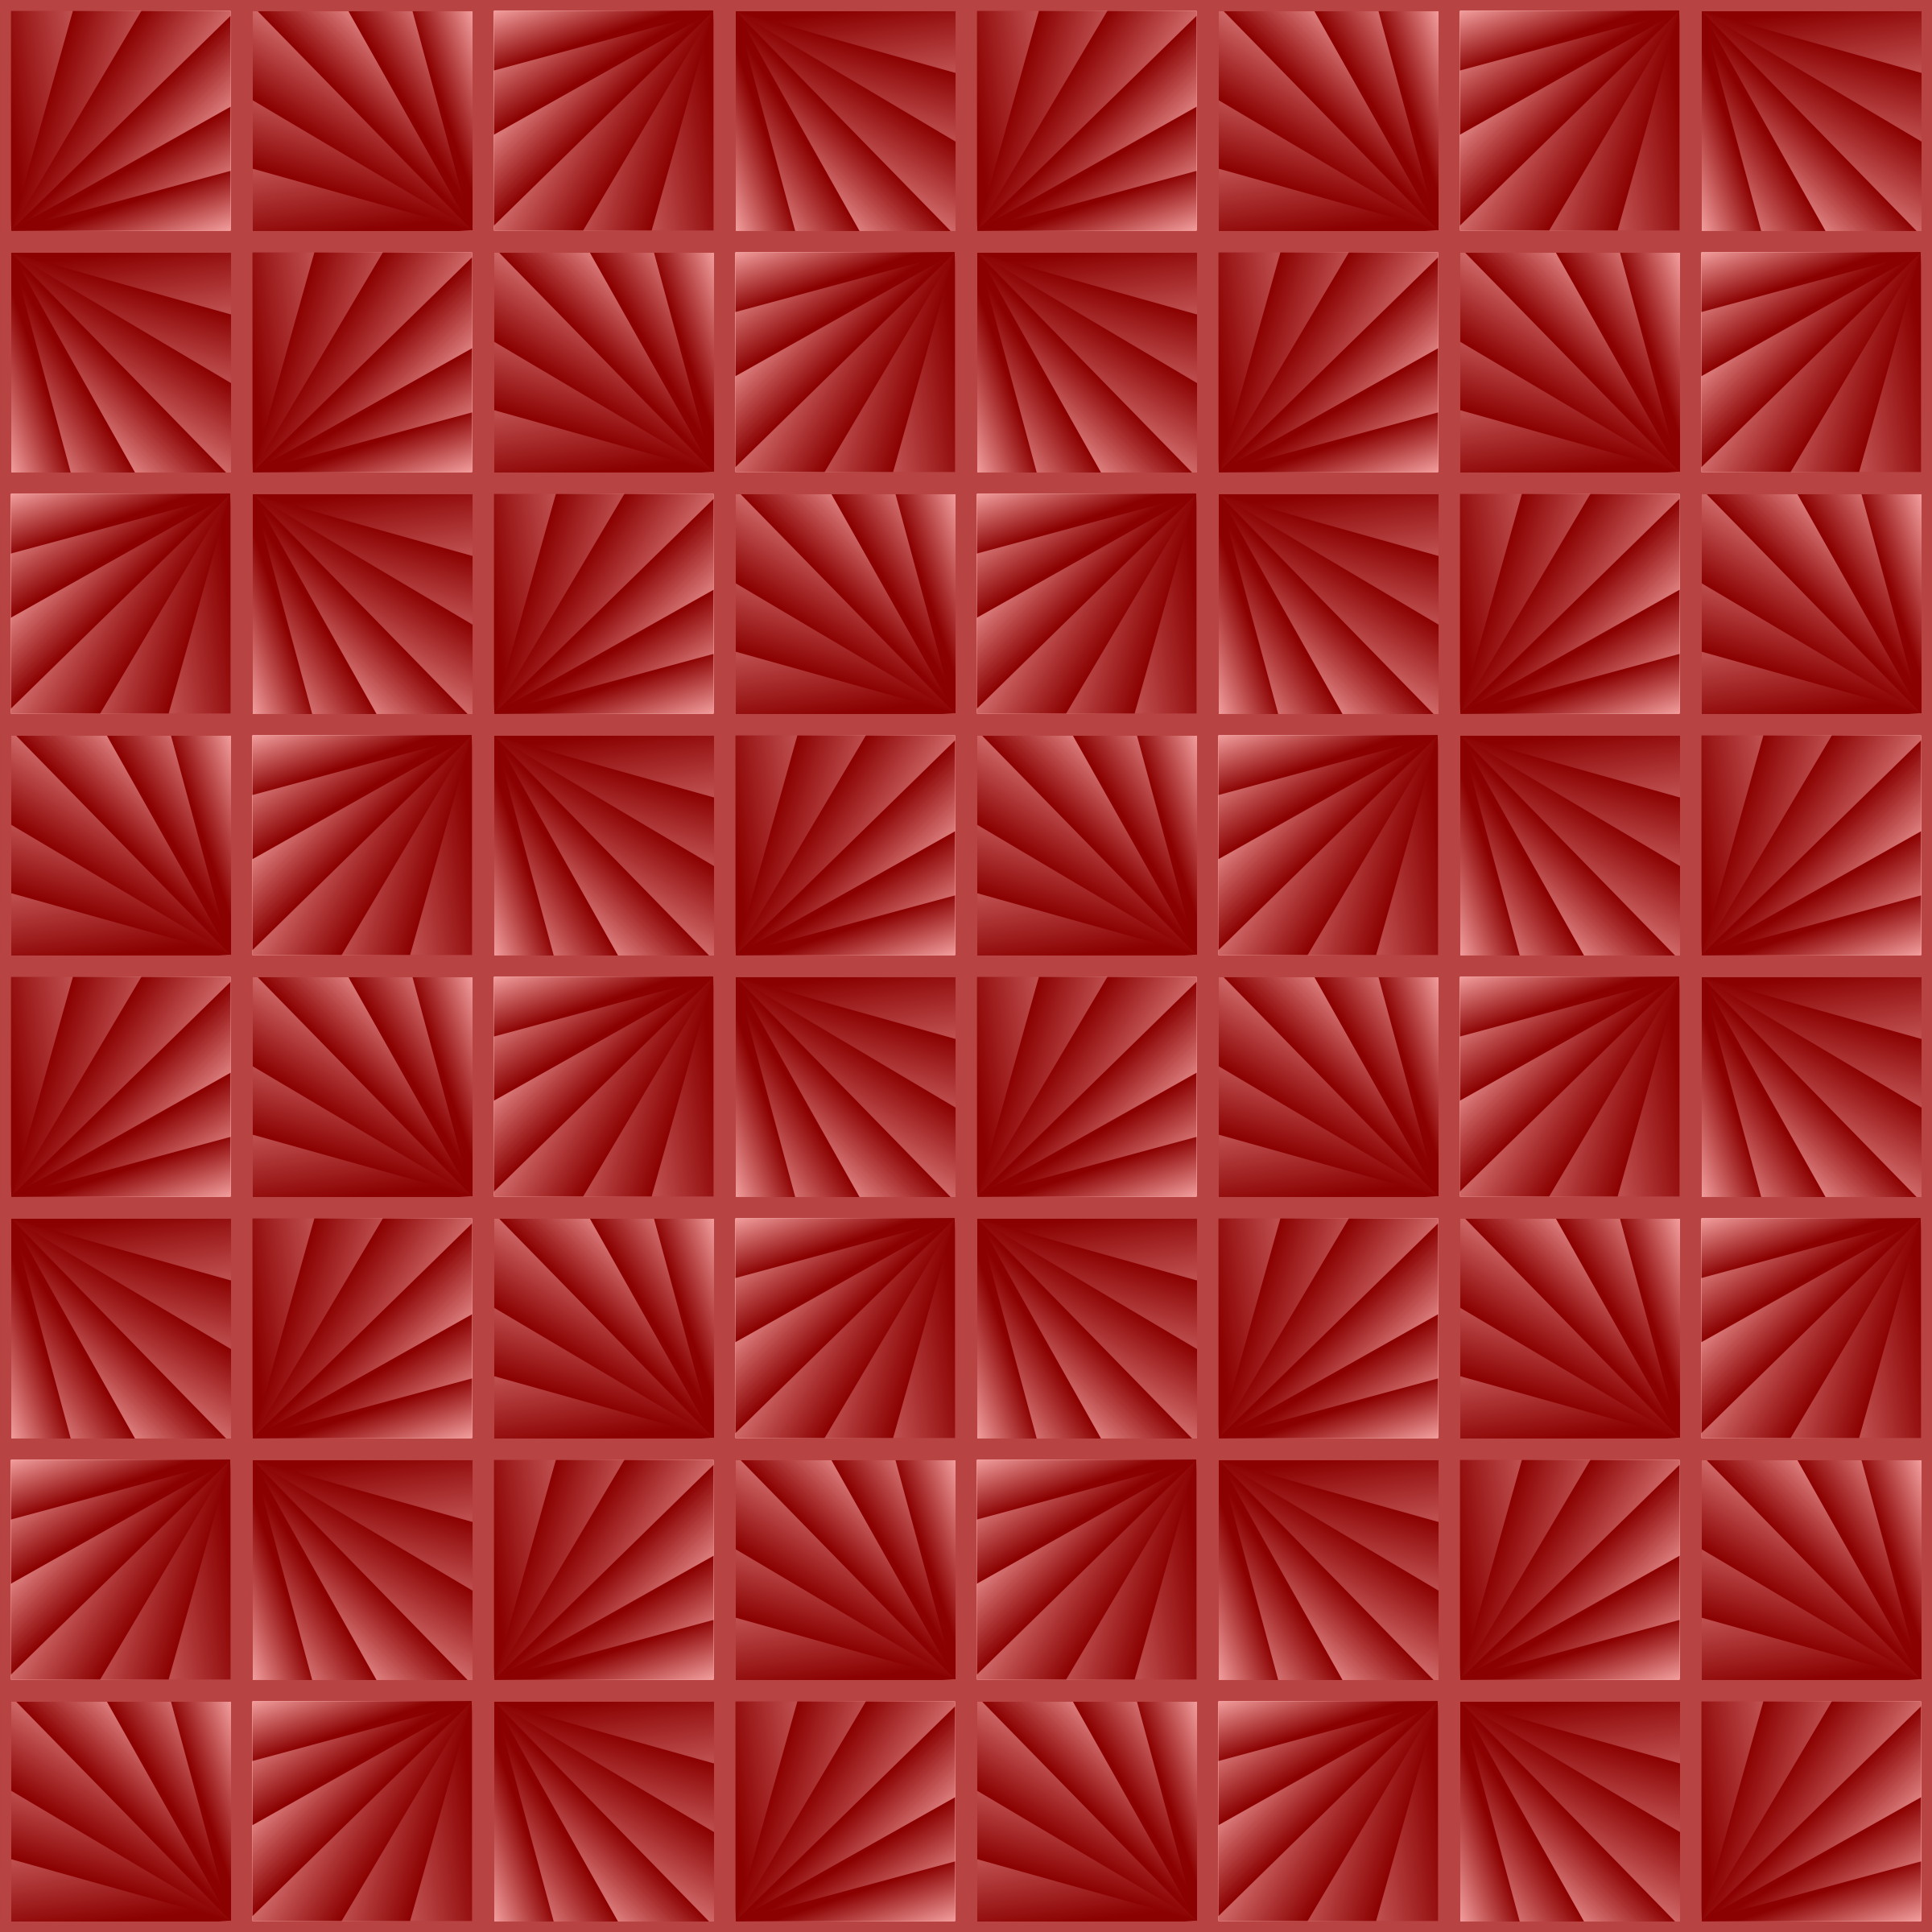 Background pattern 223 by Firkin